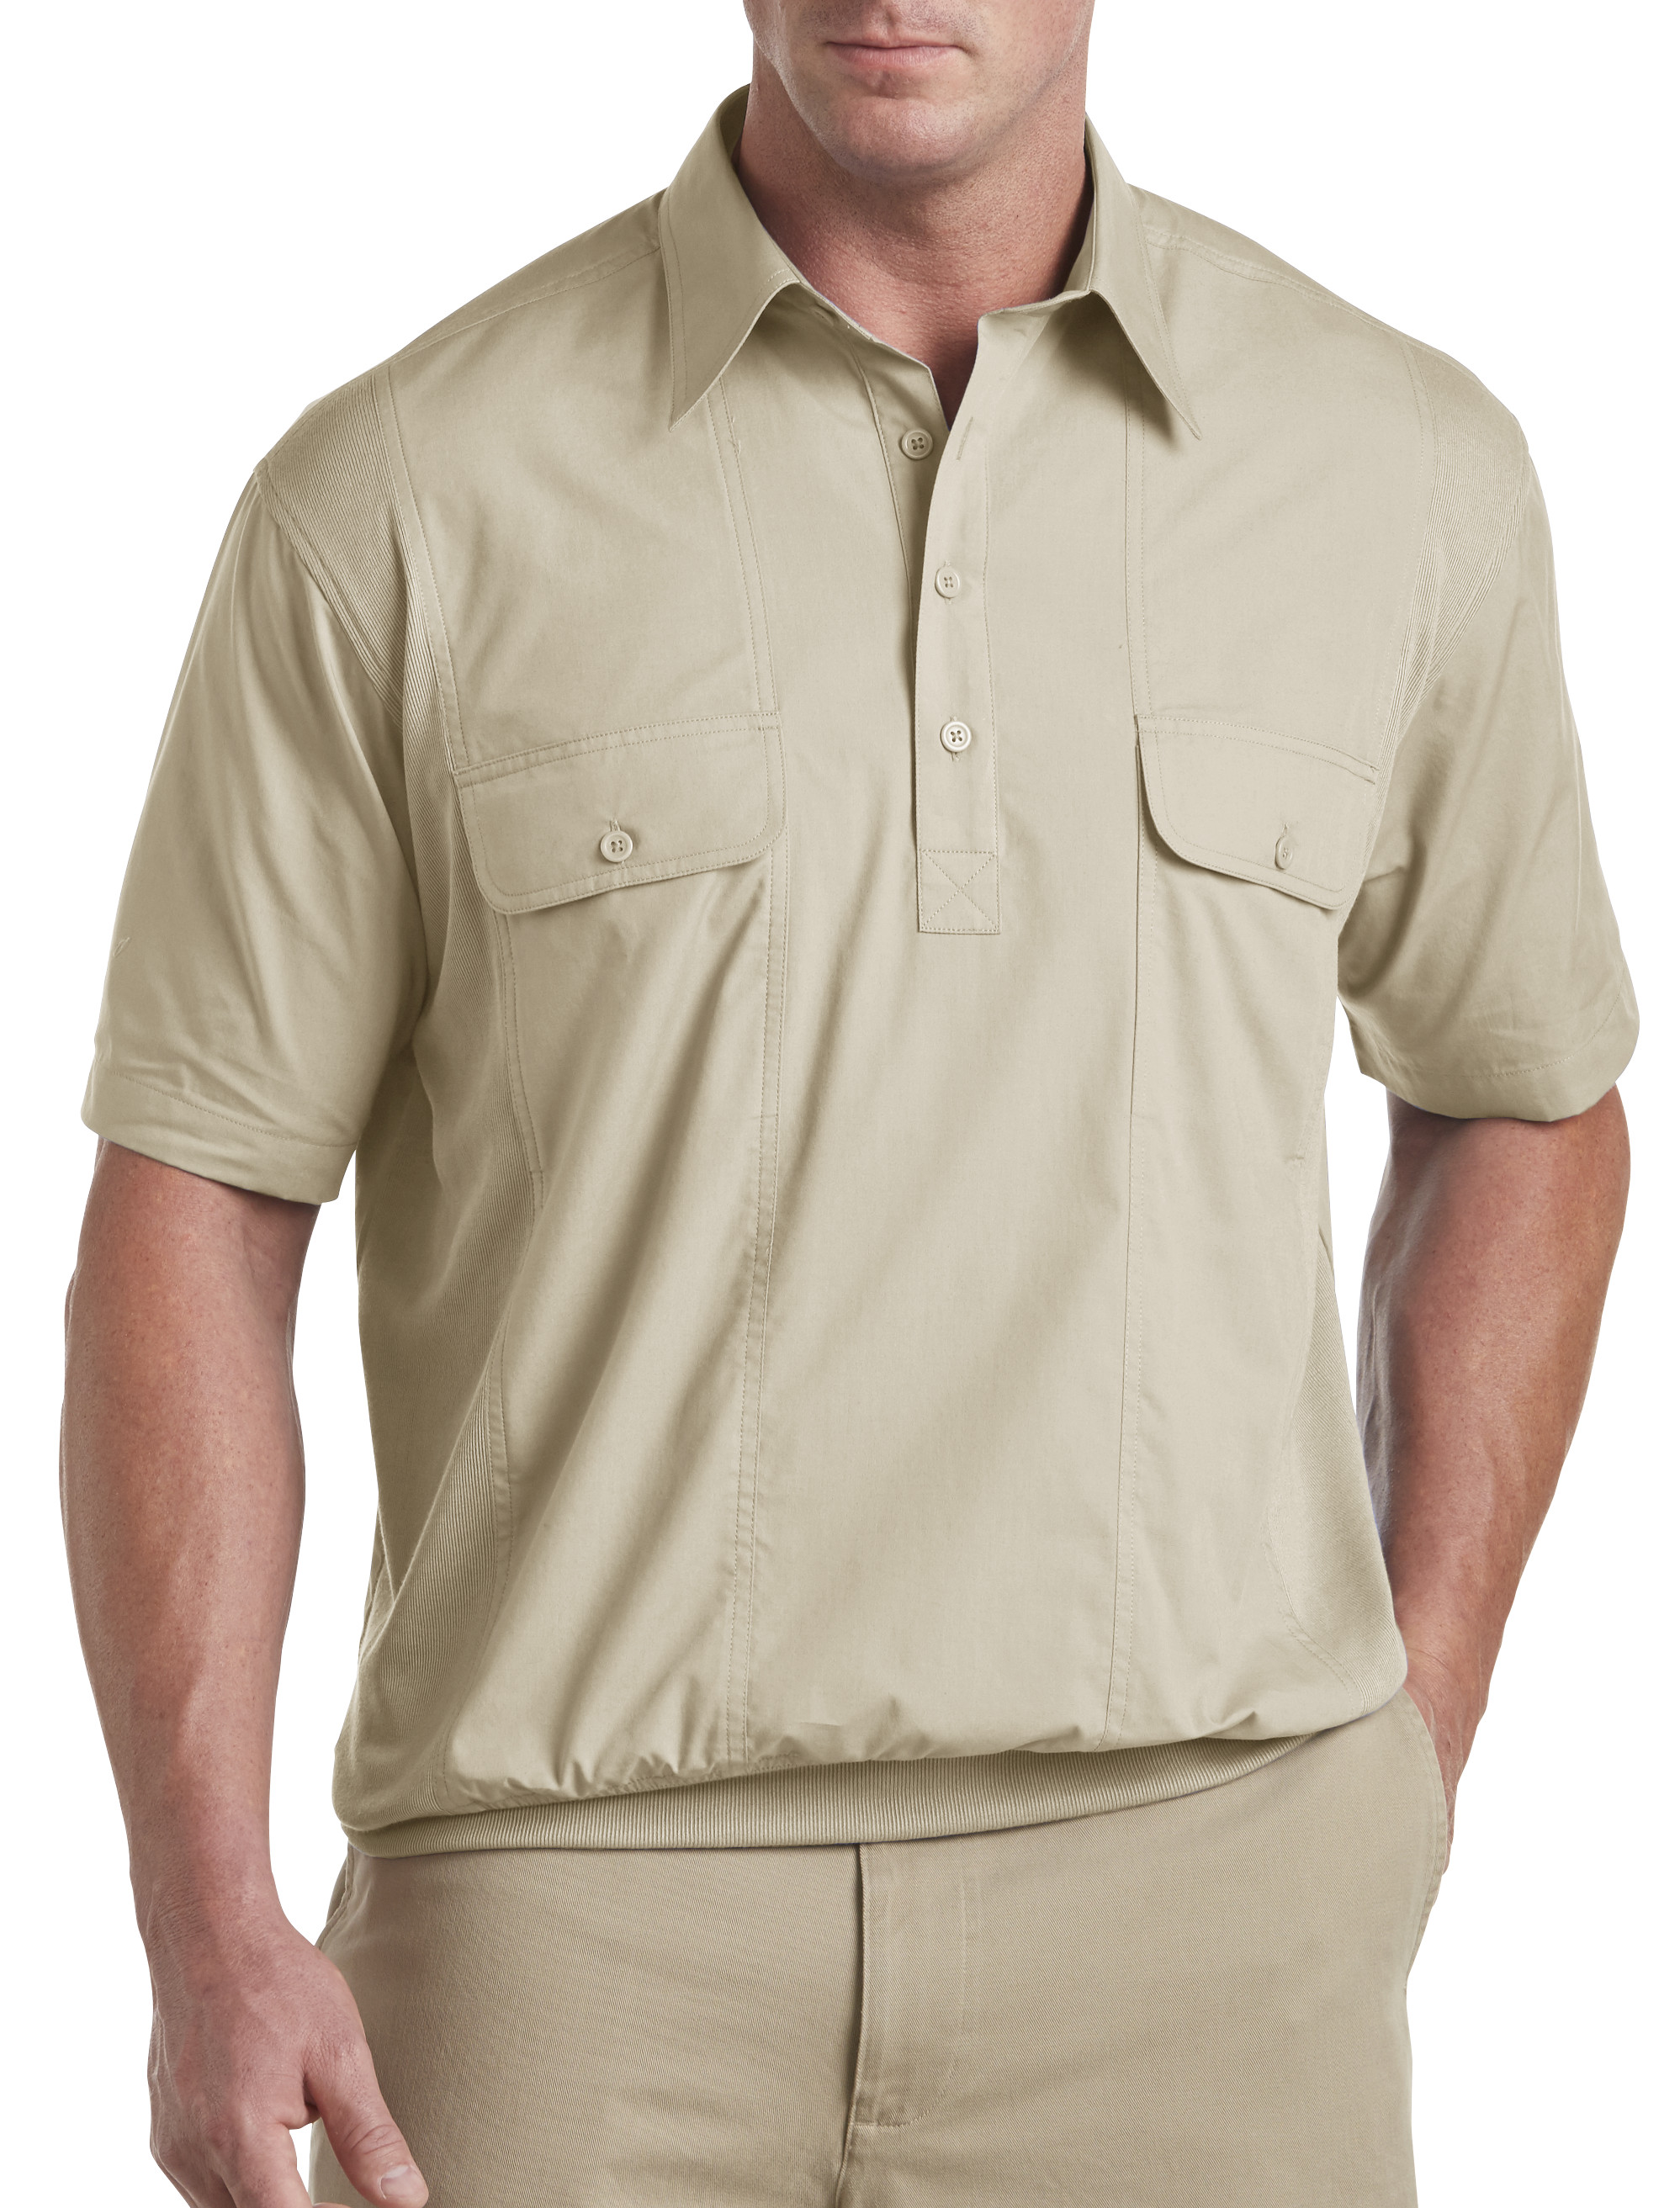 Canyon ridge banded bottom mesh panel shirt casual male xl for Big and tall casual shirts